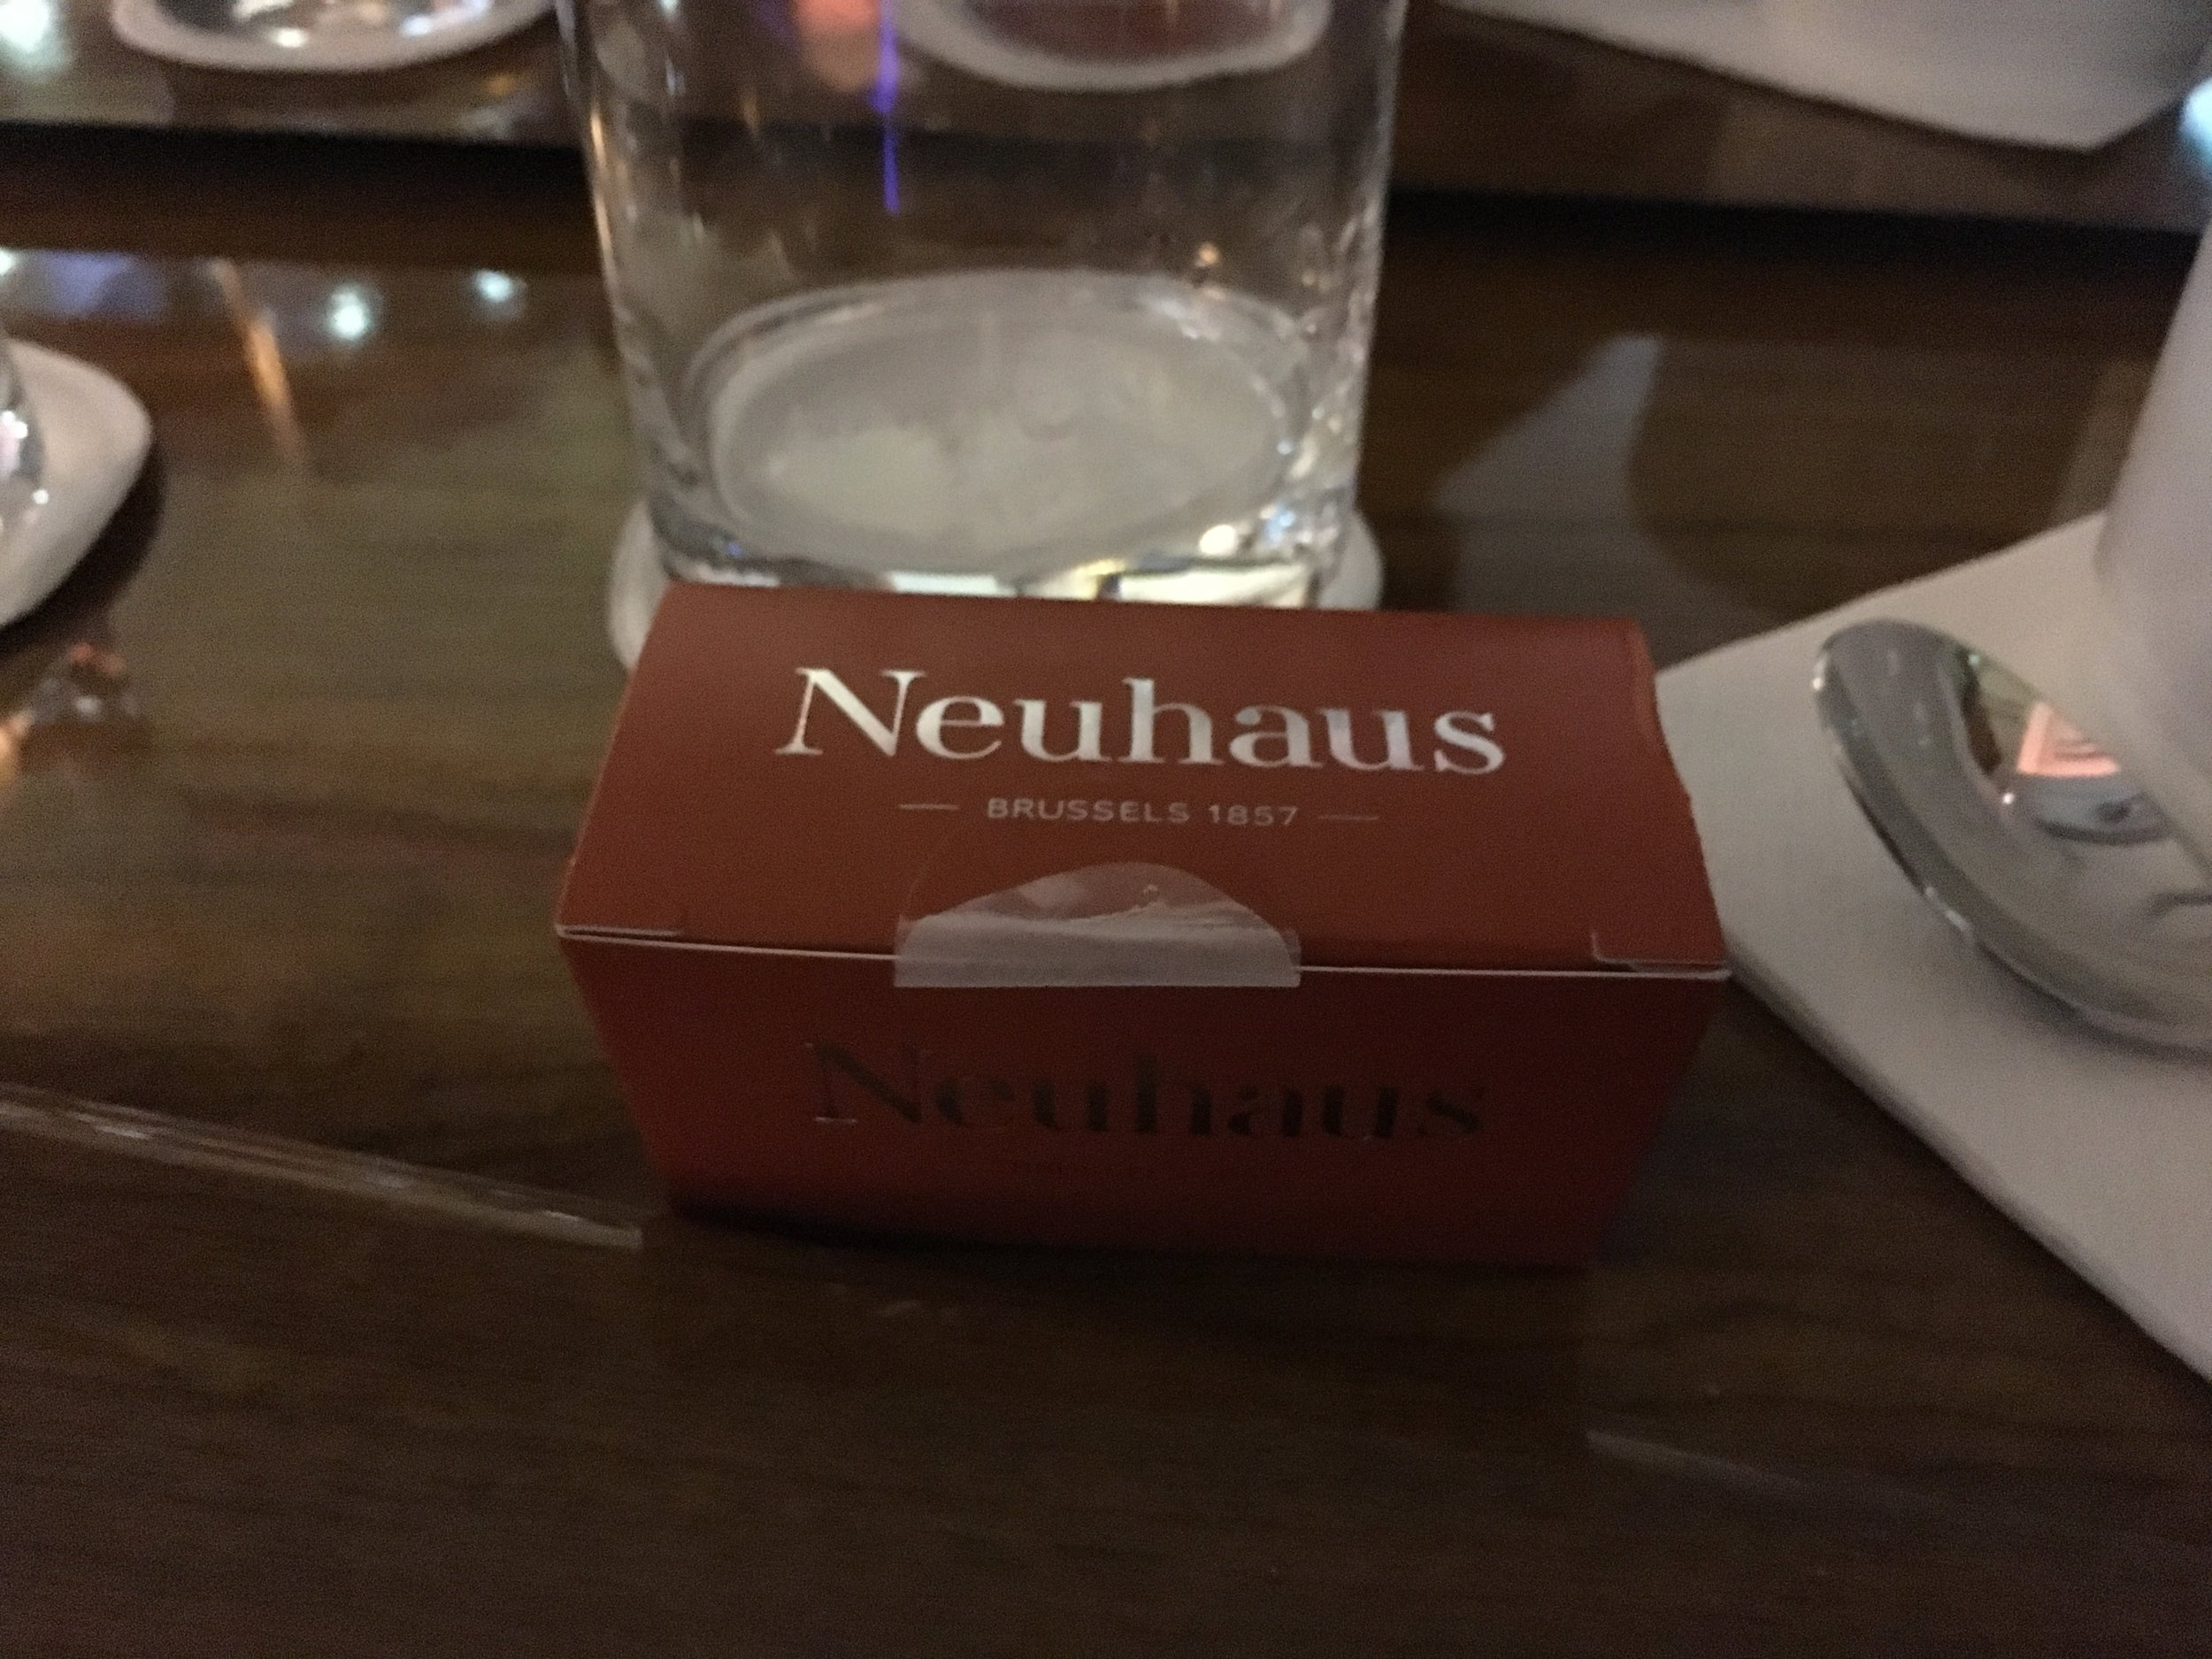 Neuhaus chocolate from Brussels